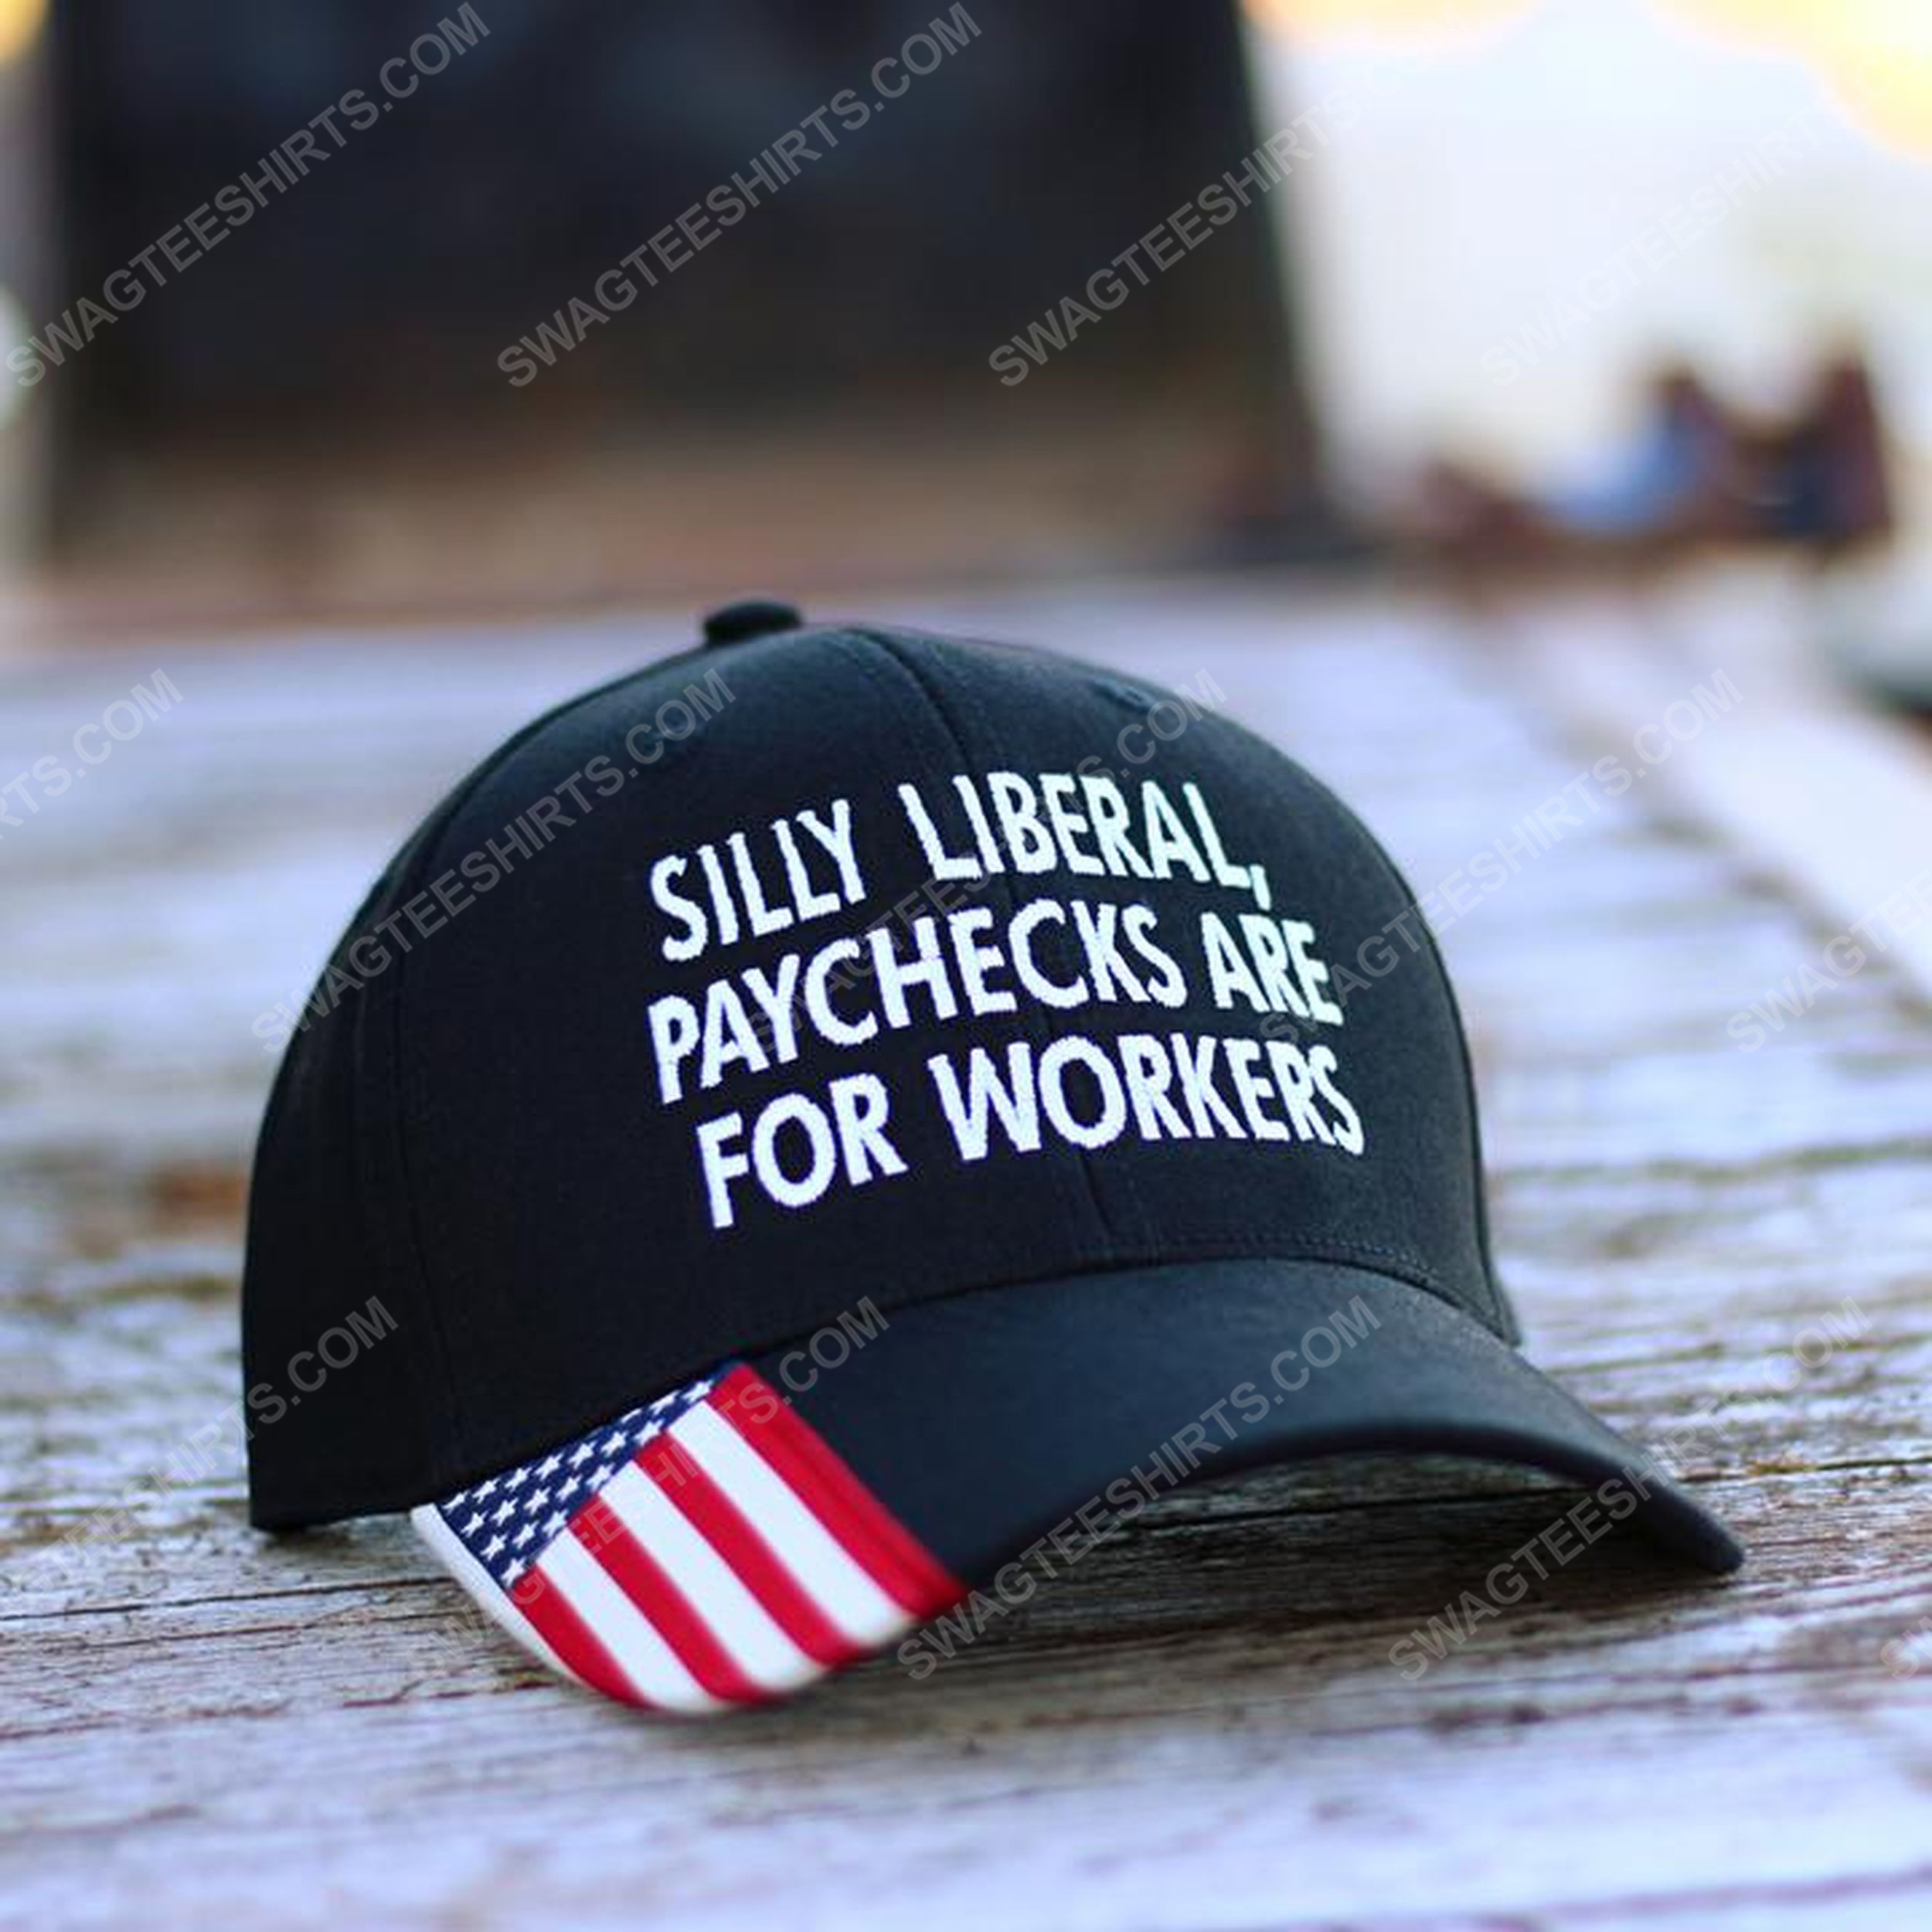 Silly liberal paychecks are for workers full print classic hat 1 - Copy